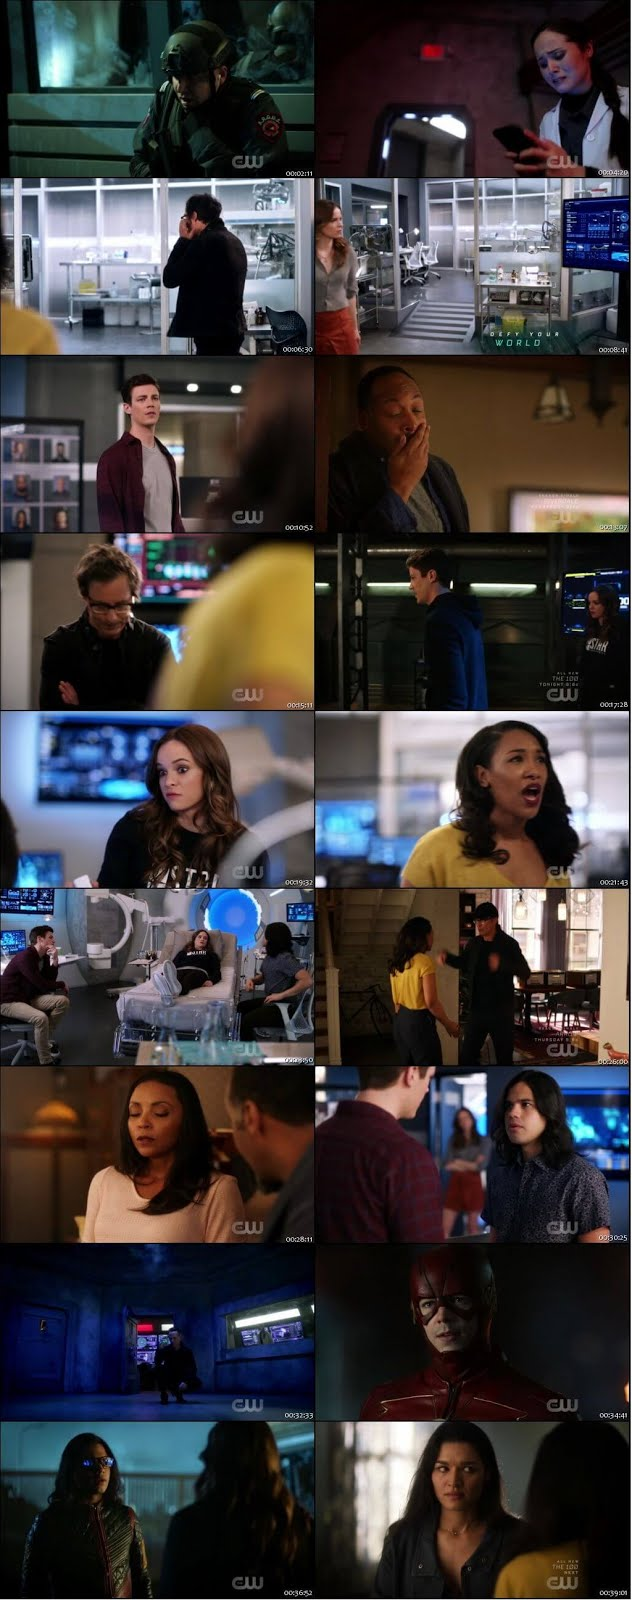 The Flash S04E22 300MB HDTV 720p x264 1